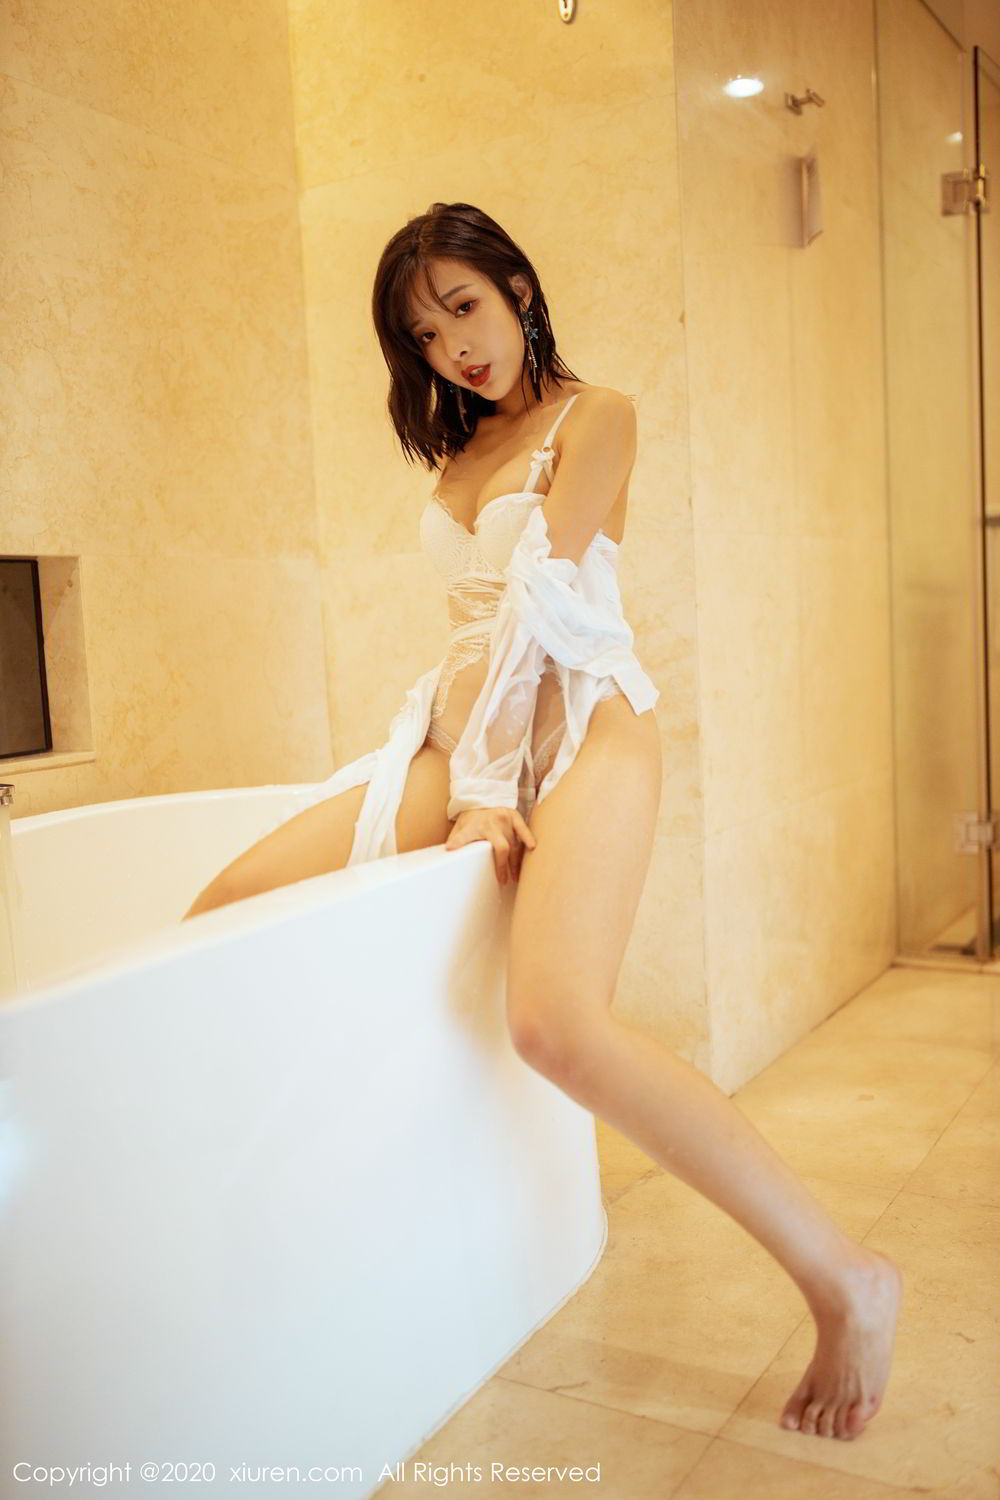 [XiuRen] Vol.2158 Chen Xiao Miao 36P, Bathroom, Chen Xiao Miao, Tall, Wet, Xiuren